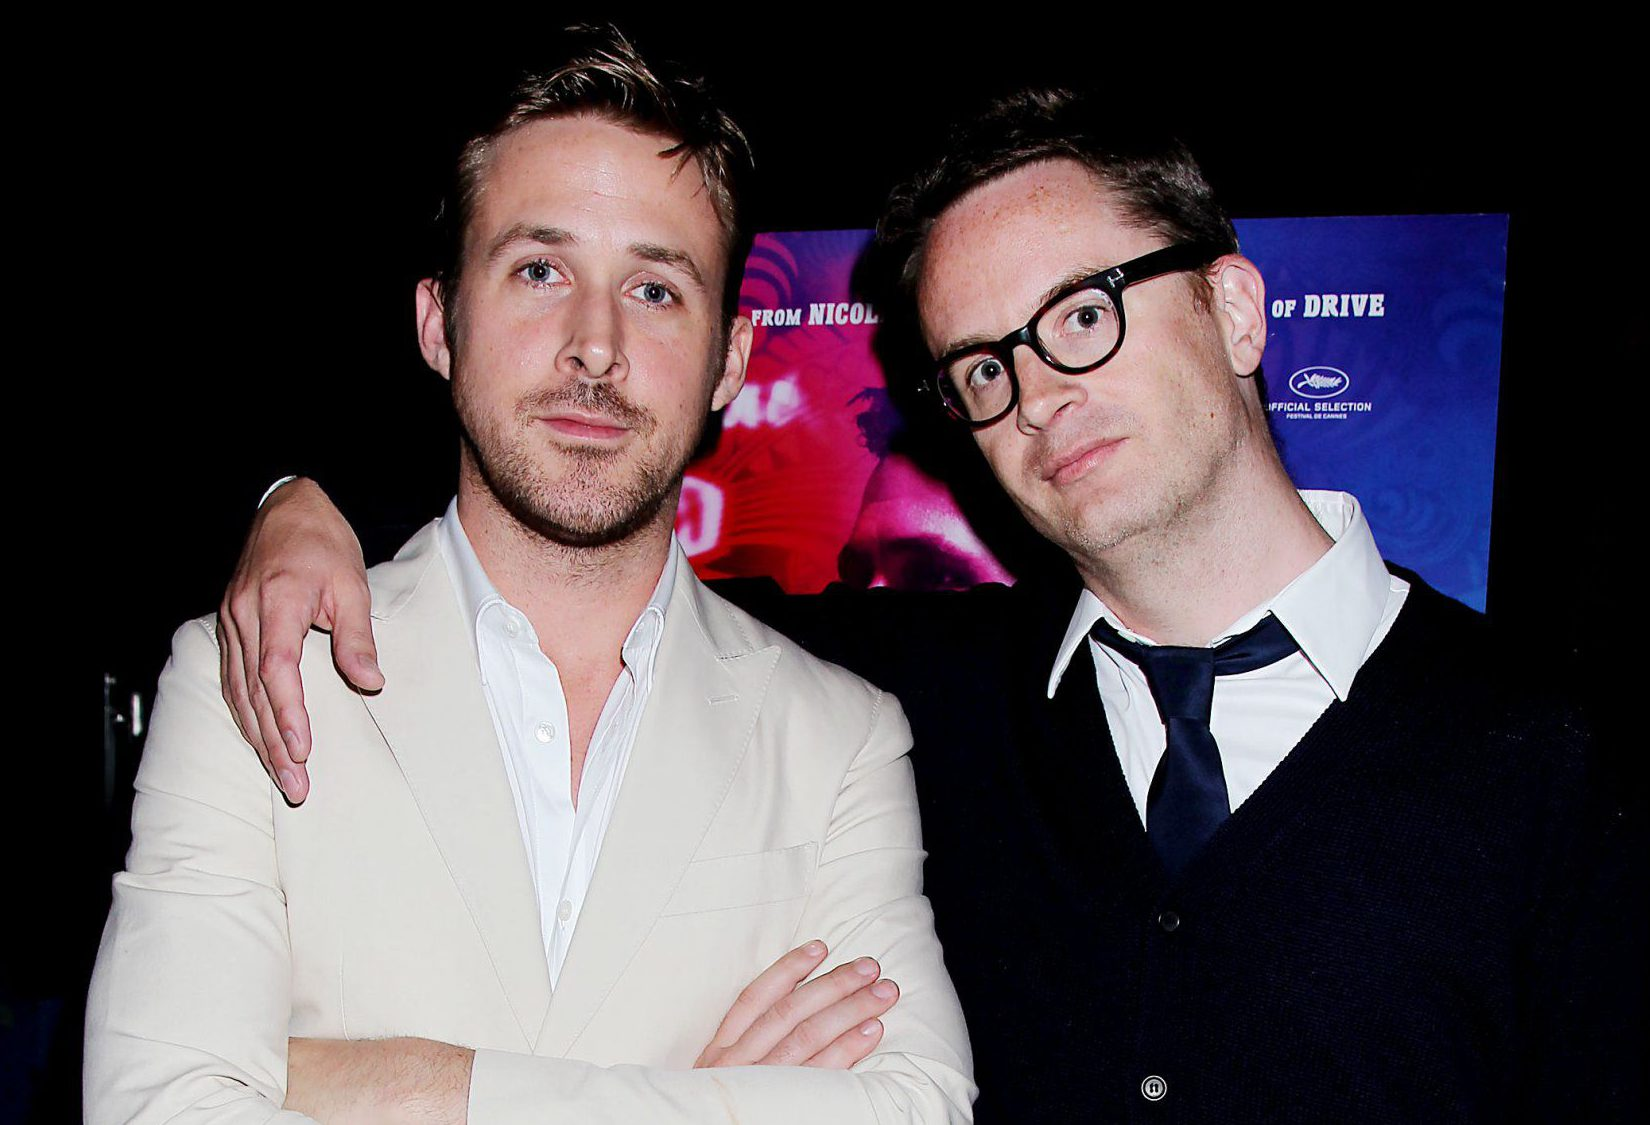 Mandatory Credit: Photo by Dave Allocca/StarPix/REX/Shutterstock (5632421u)nRyan Gosling and Nicolas Winding Refnn'Only God Forgives' film screening, New York, America - 16 Jul 2013nn